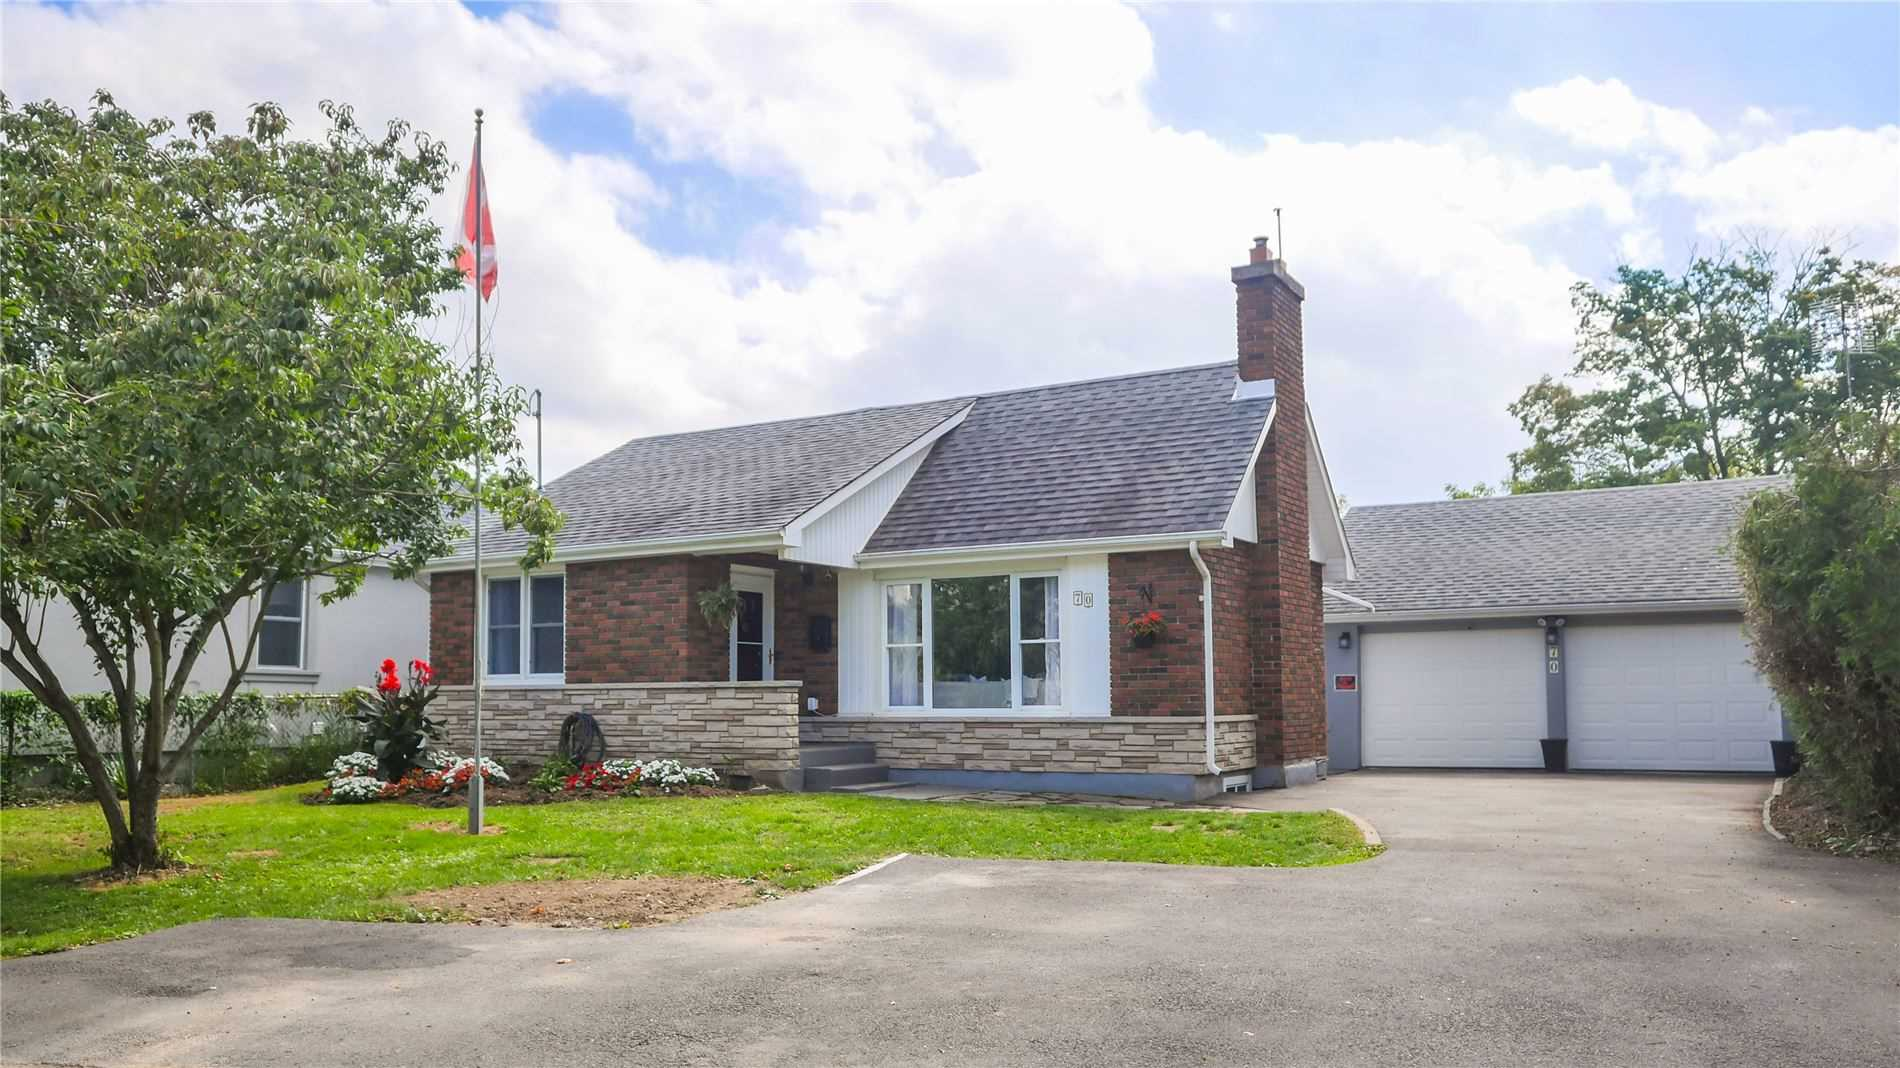 Detached house For Sale In St. Catharines